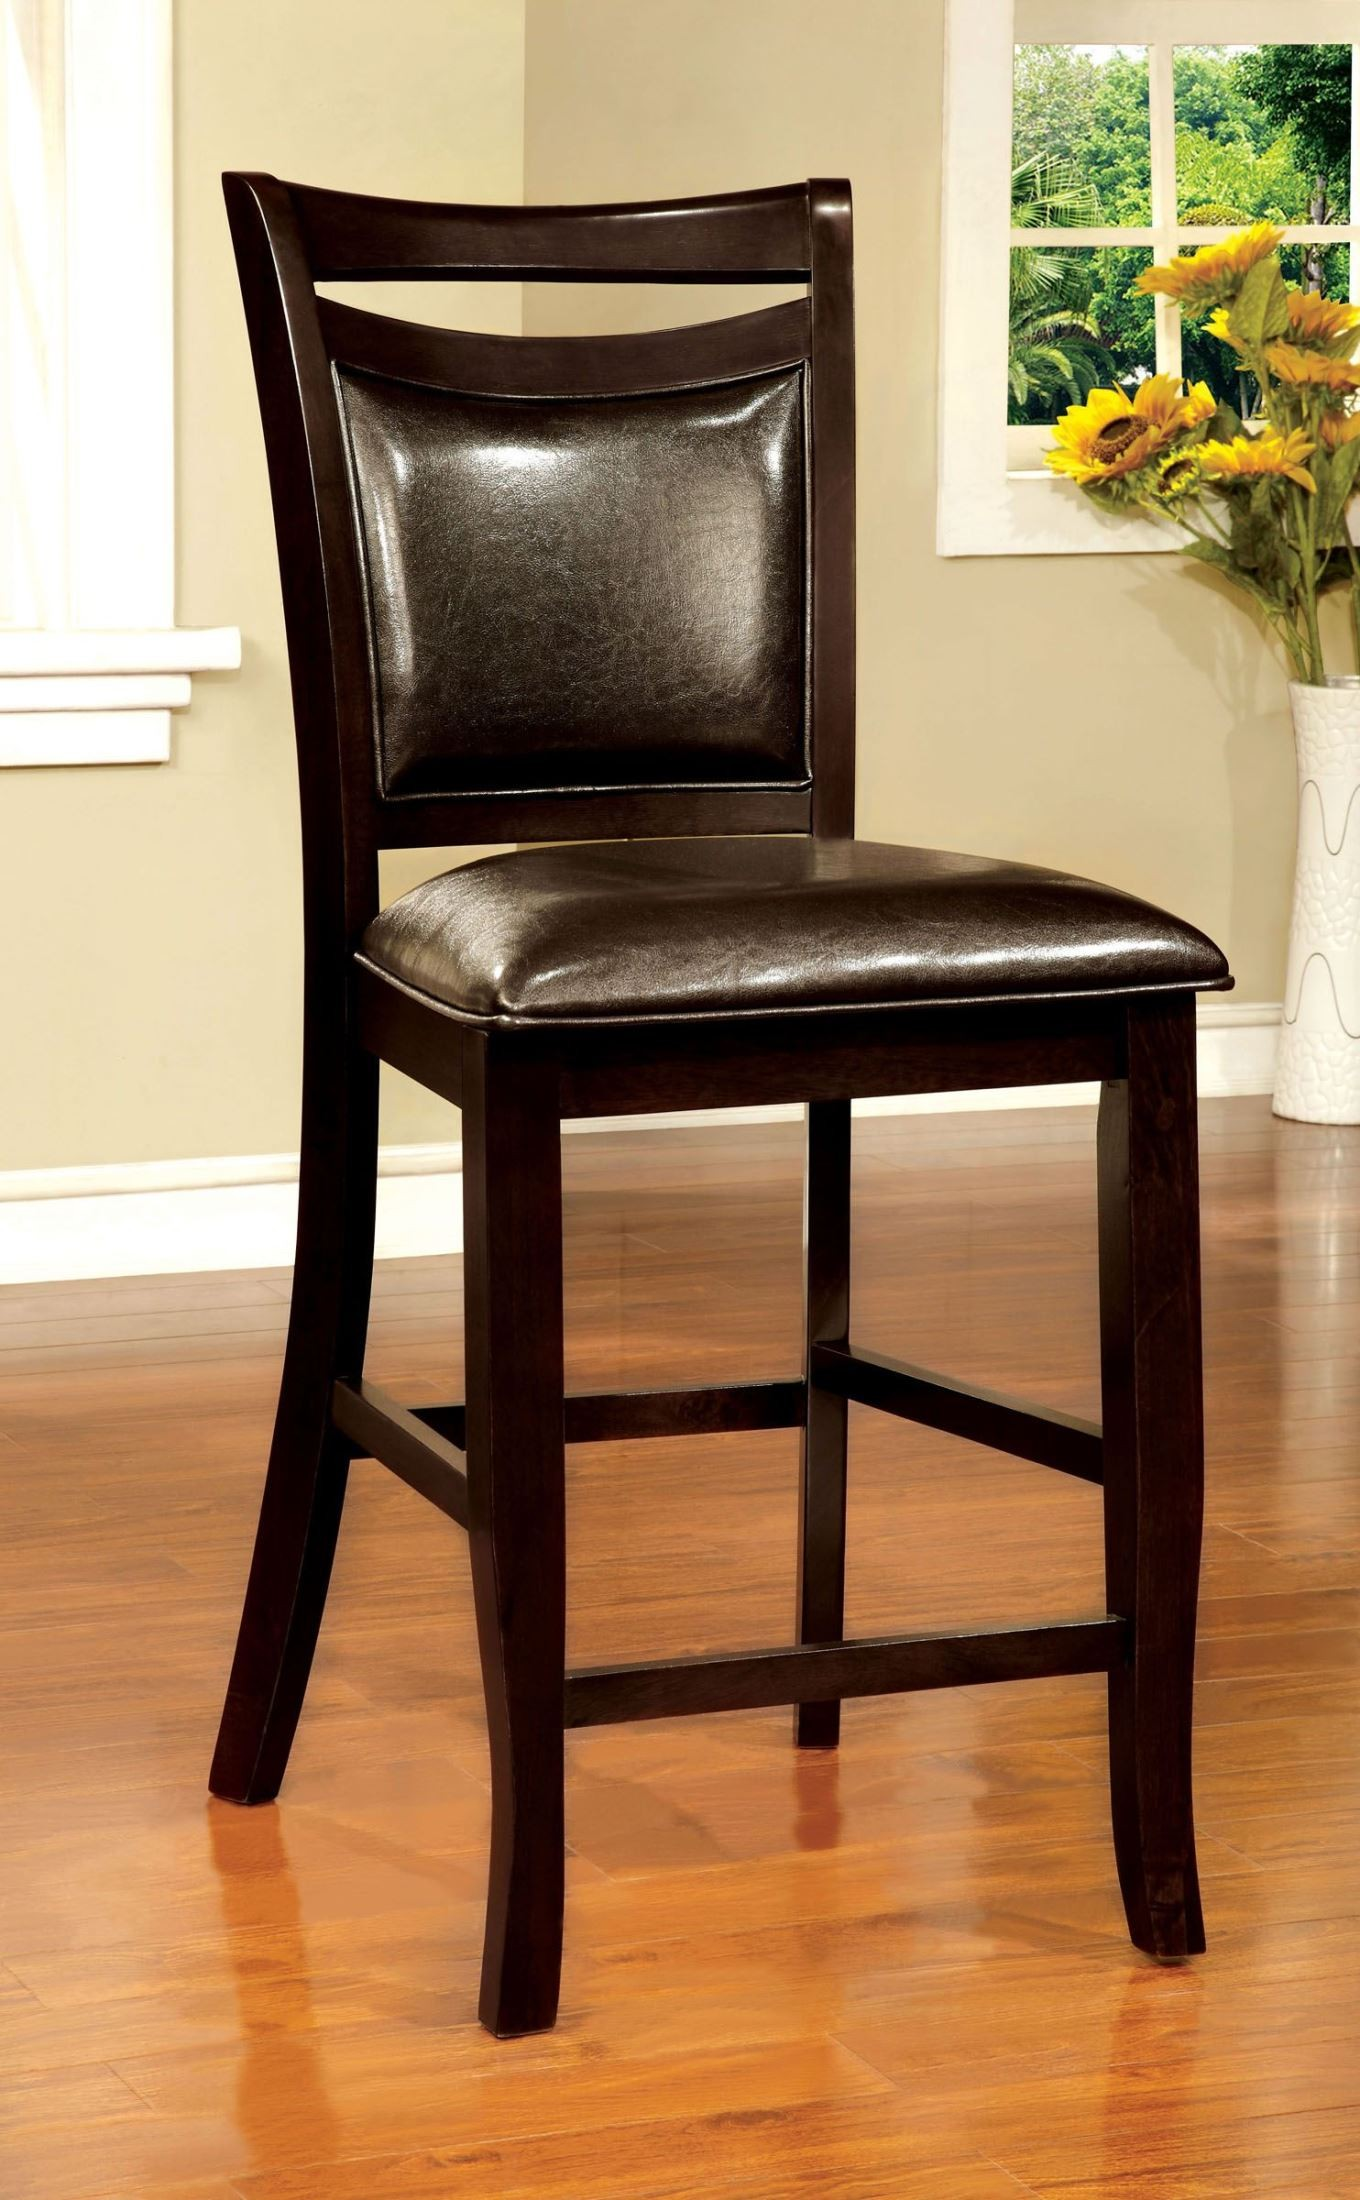 Woodside II Espresso Counter Height Chair Set of 2 from Furniture of ...